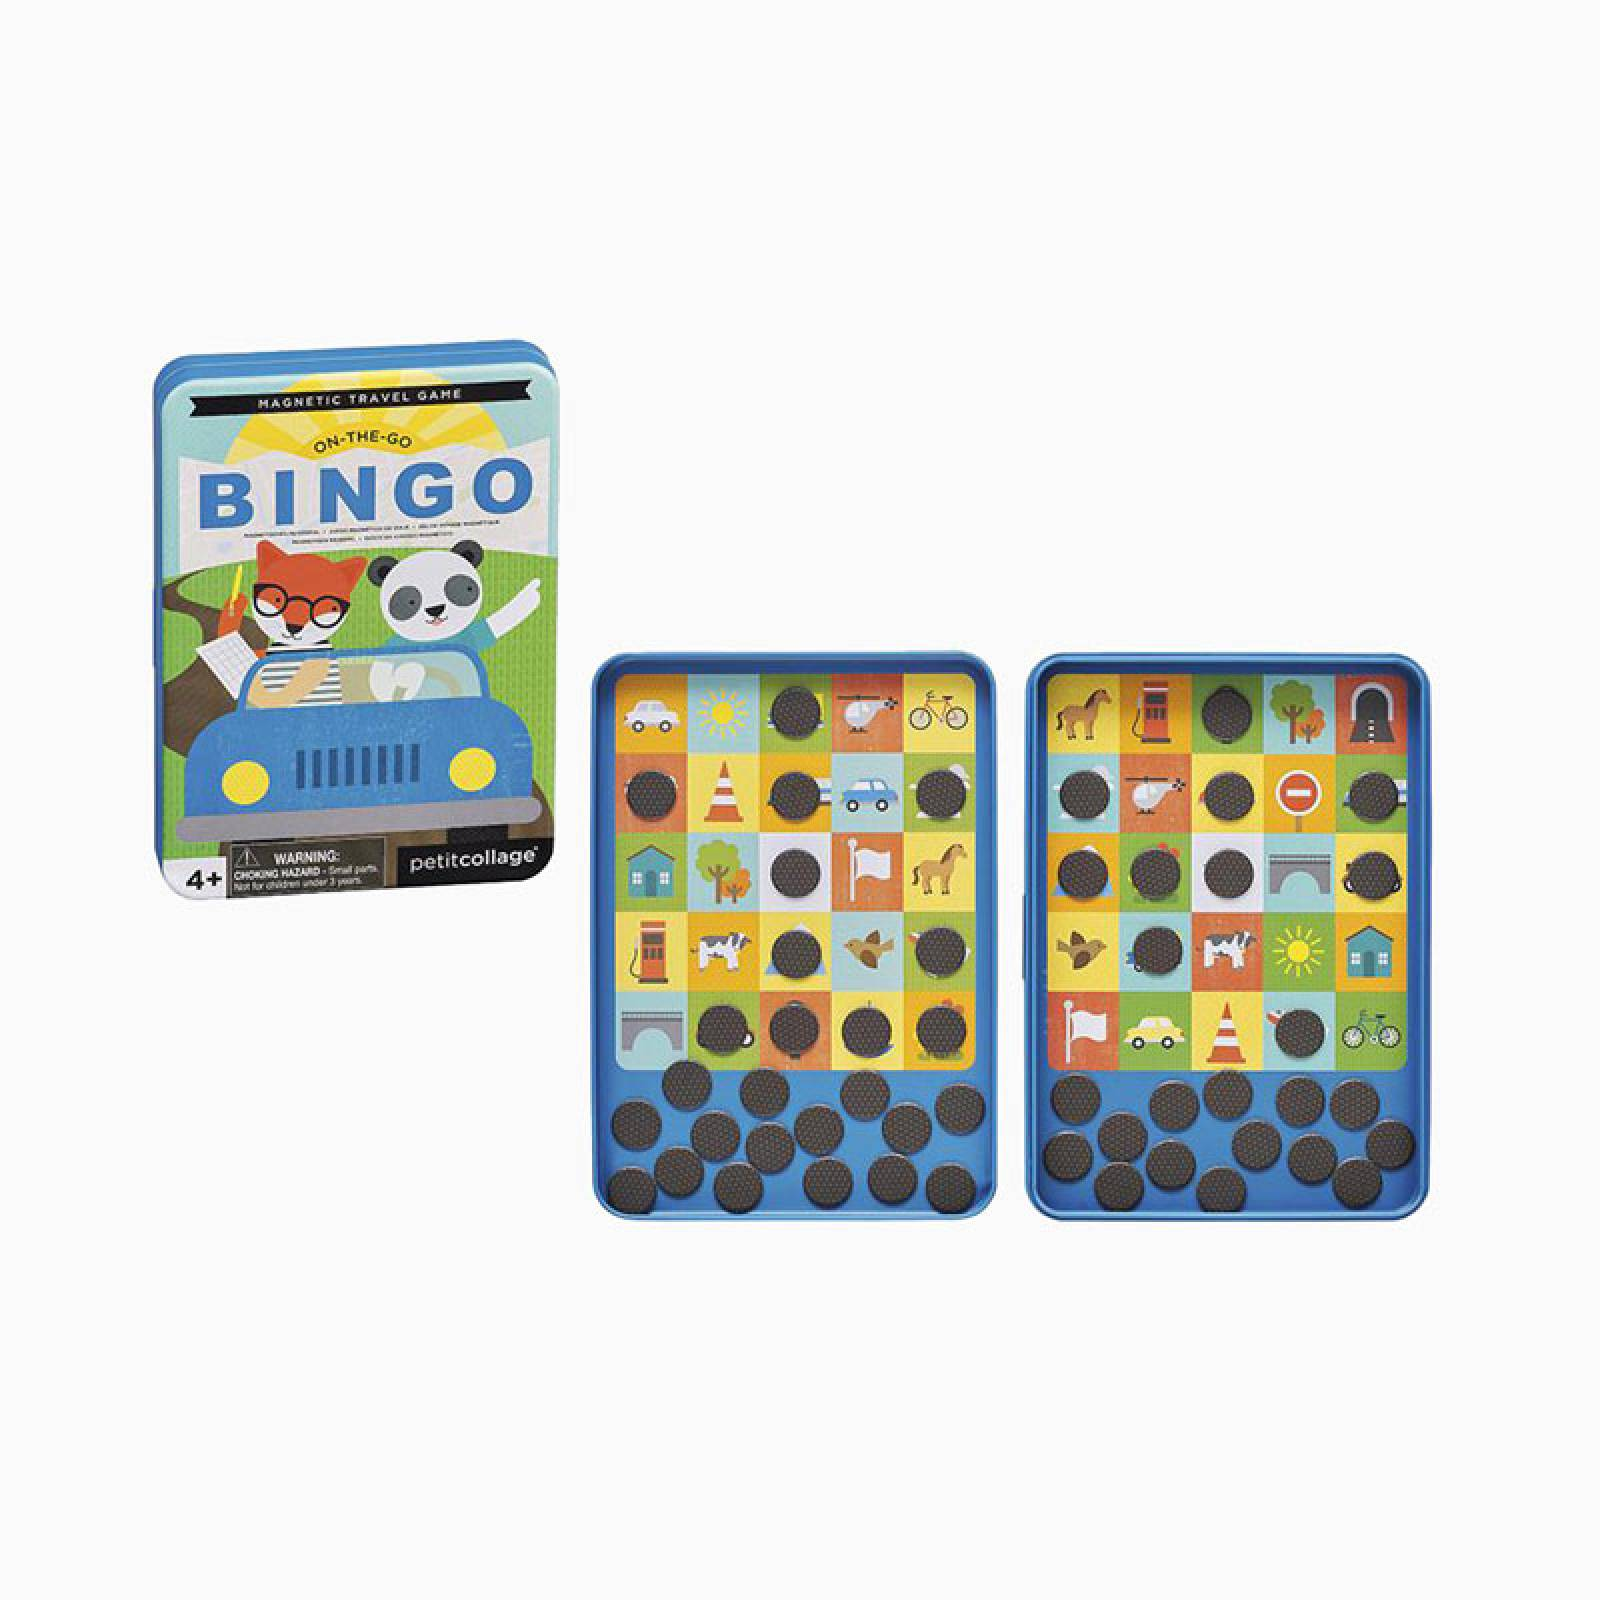 On The Go Bingo - Magnetic Travel Game 4+